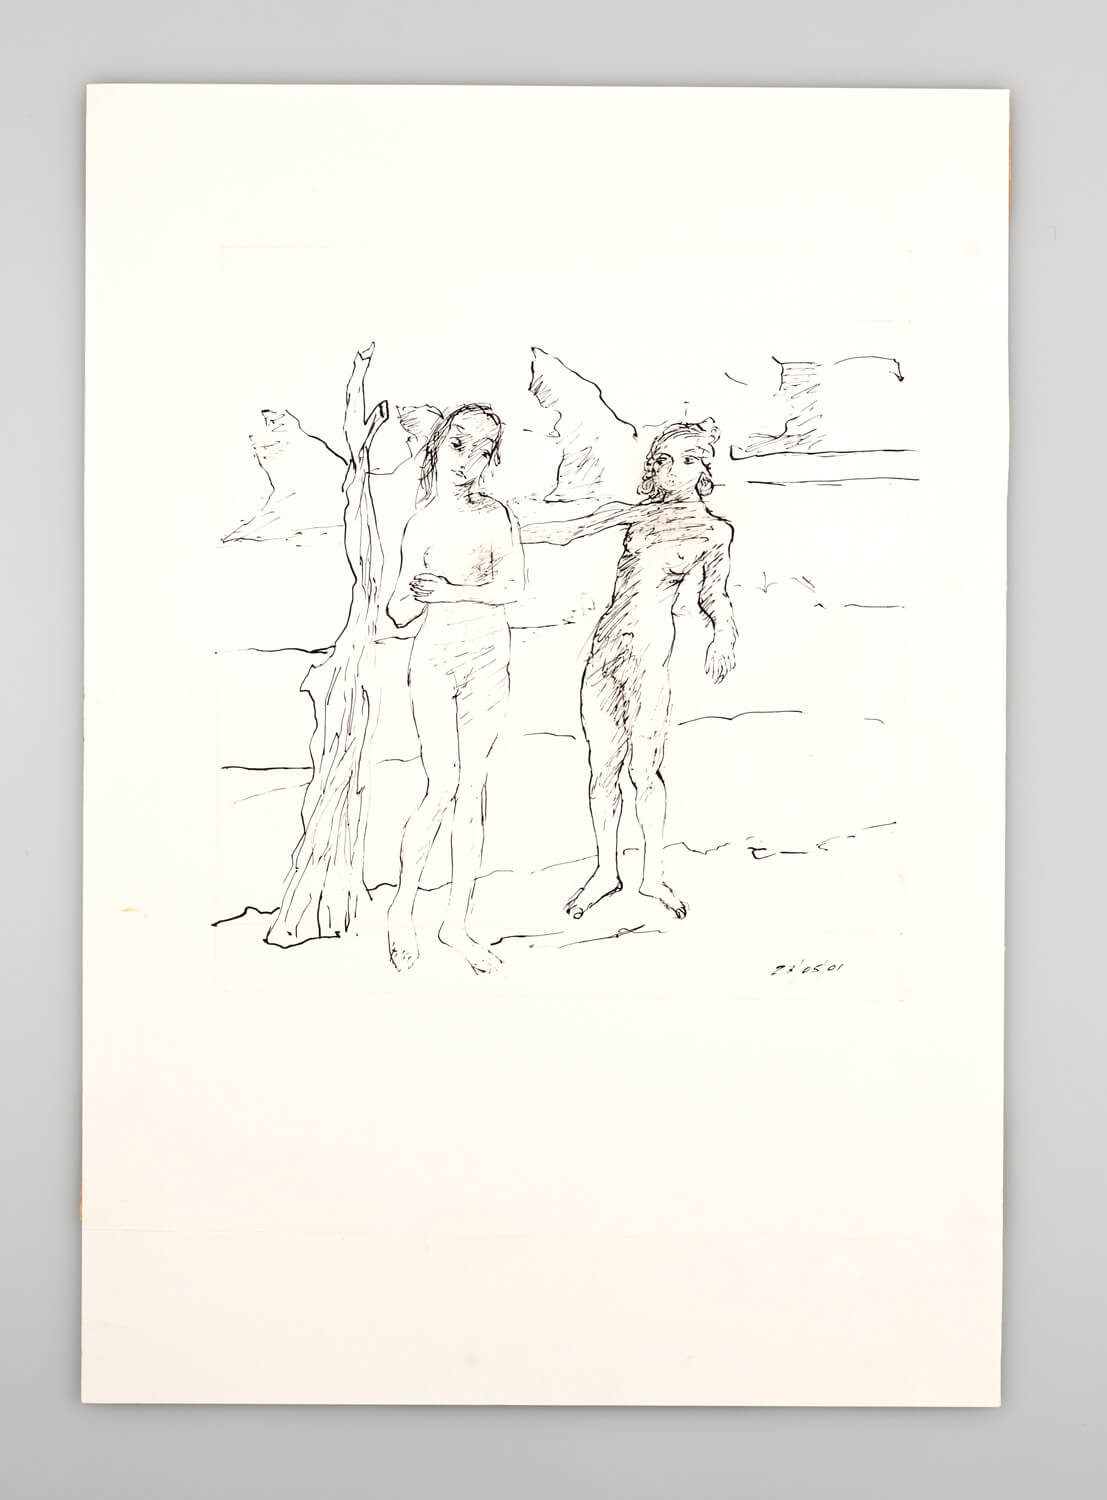 JB103 - Nude Man and Woman in a landscape - 2001 - 50 x 35 cm - Indian ink on paper